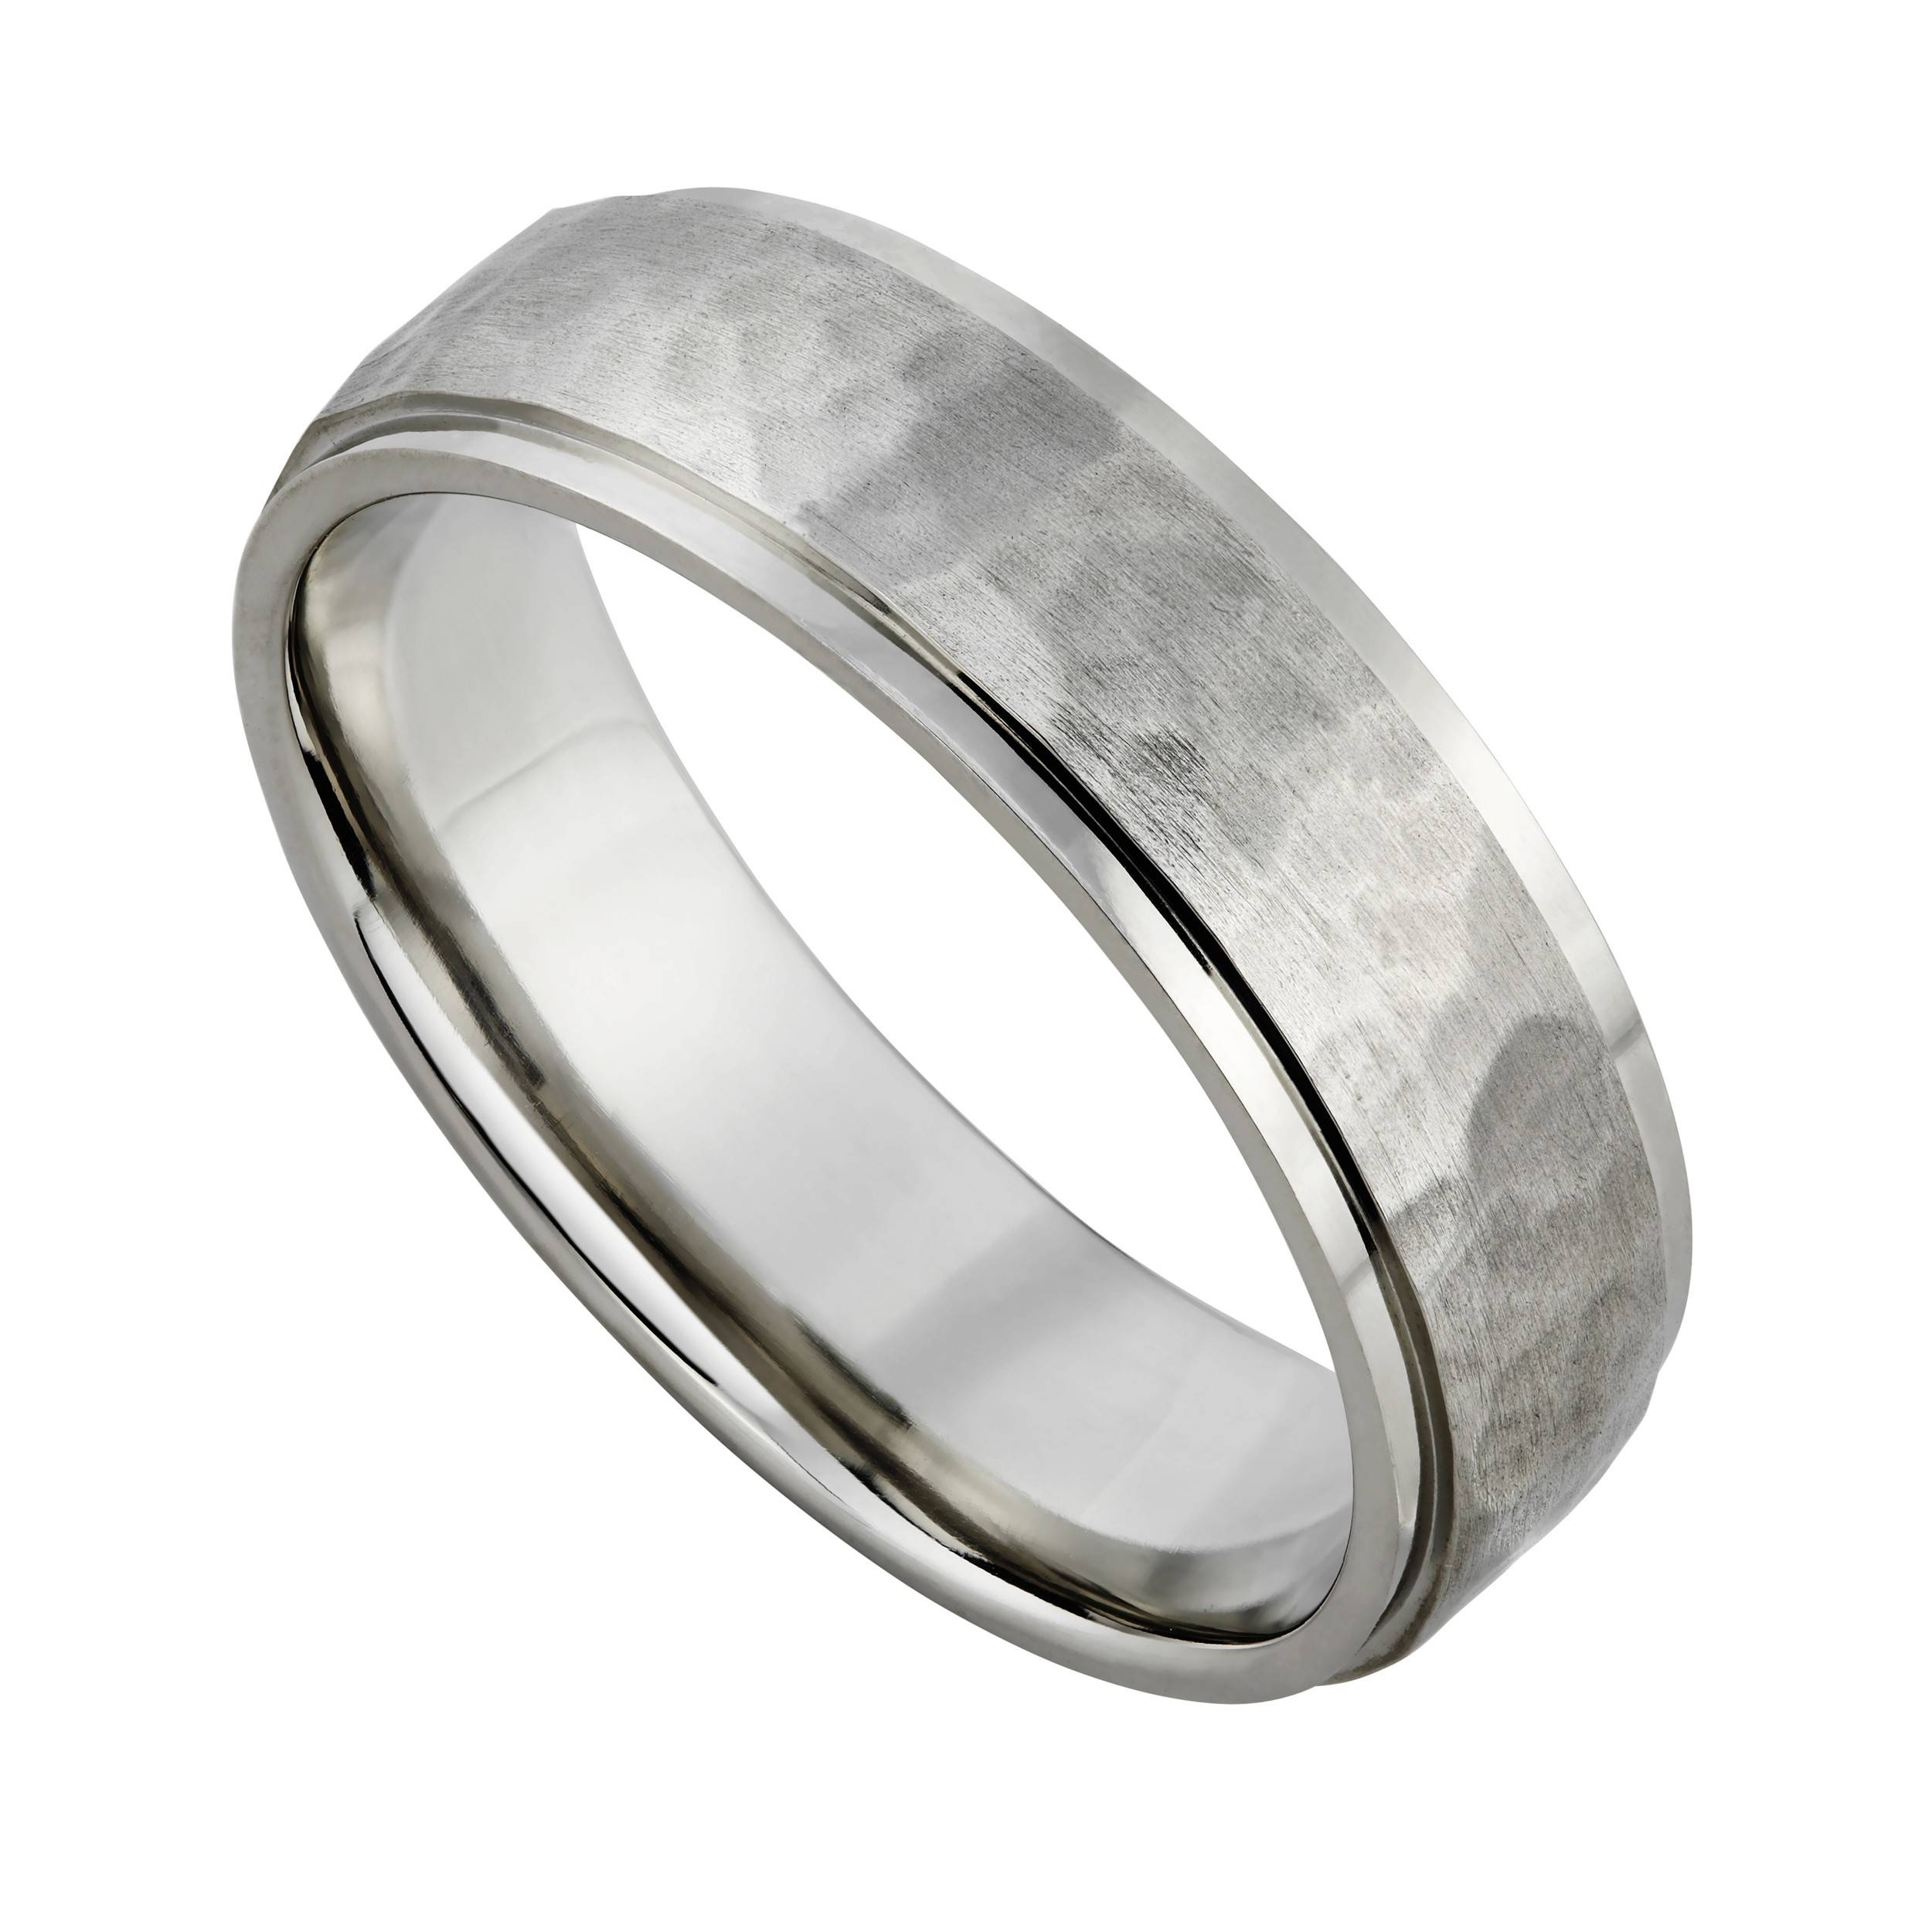 Men's Palladium 950 6Mm Ring Regarding Palladium Wedding Rings (Gallery 6 of 15)